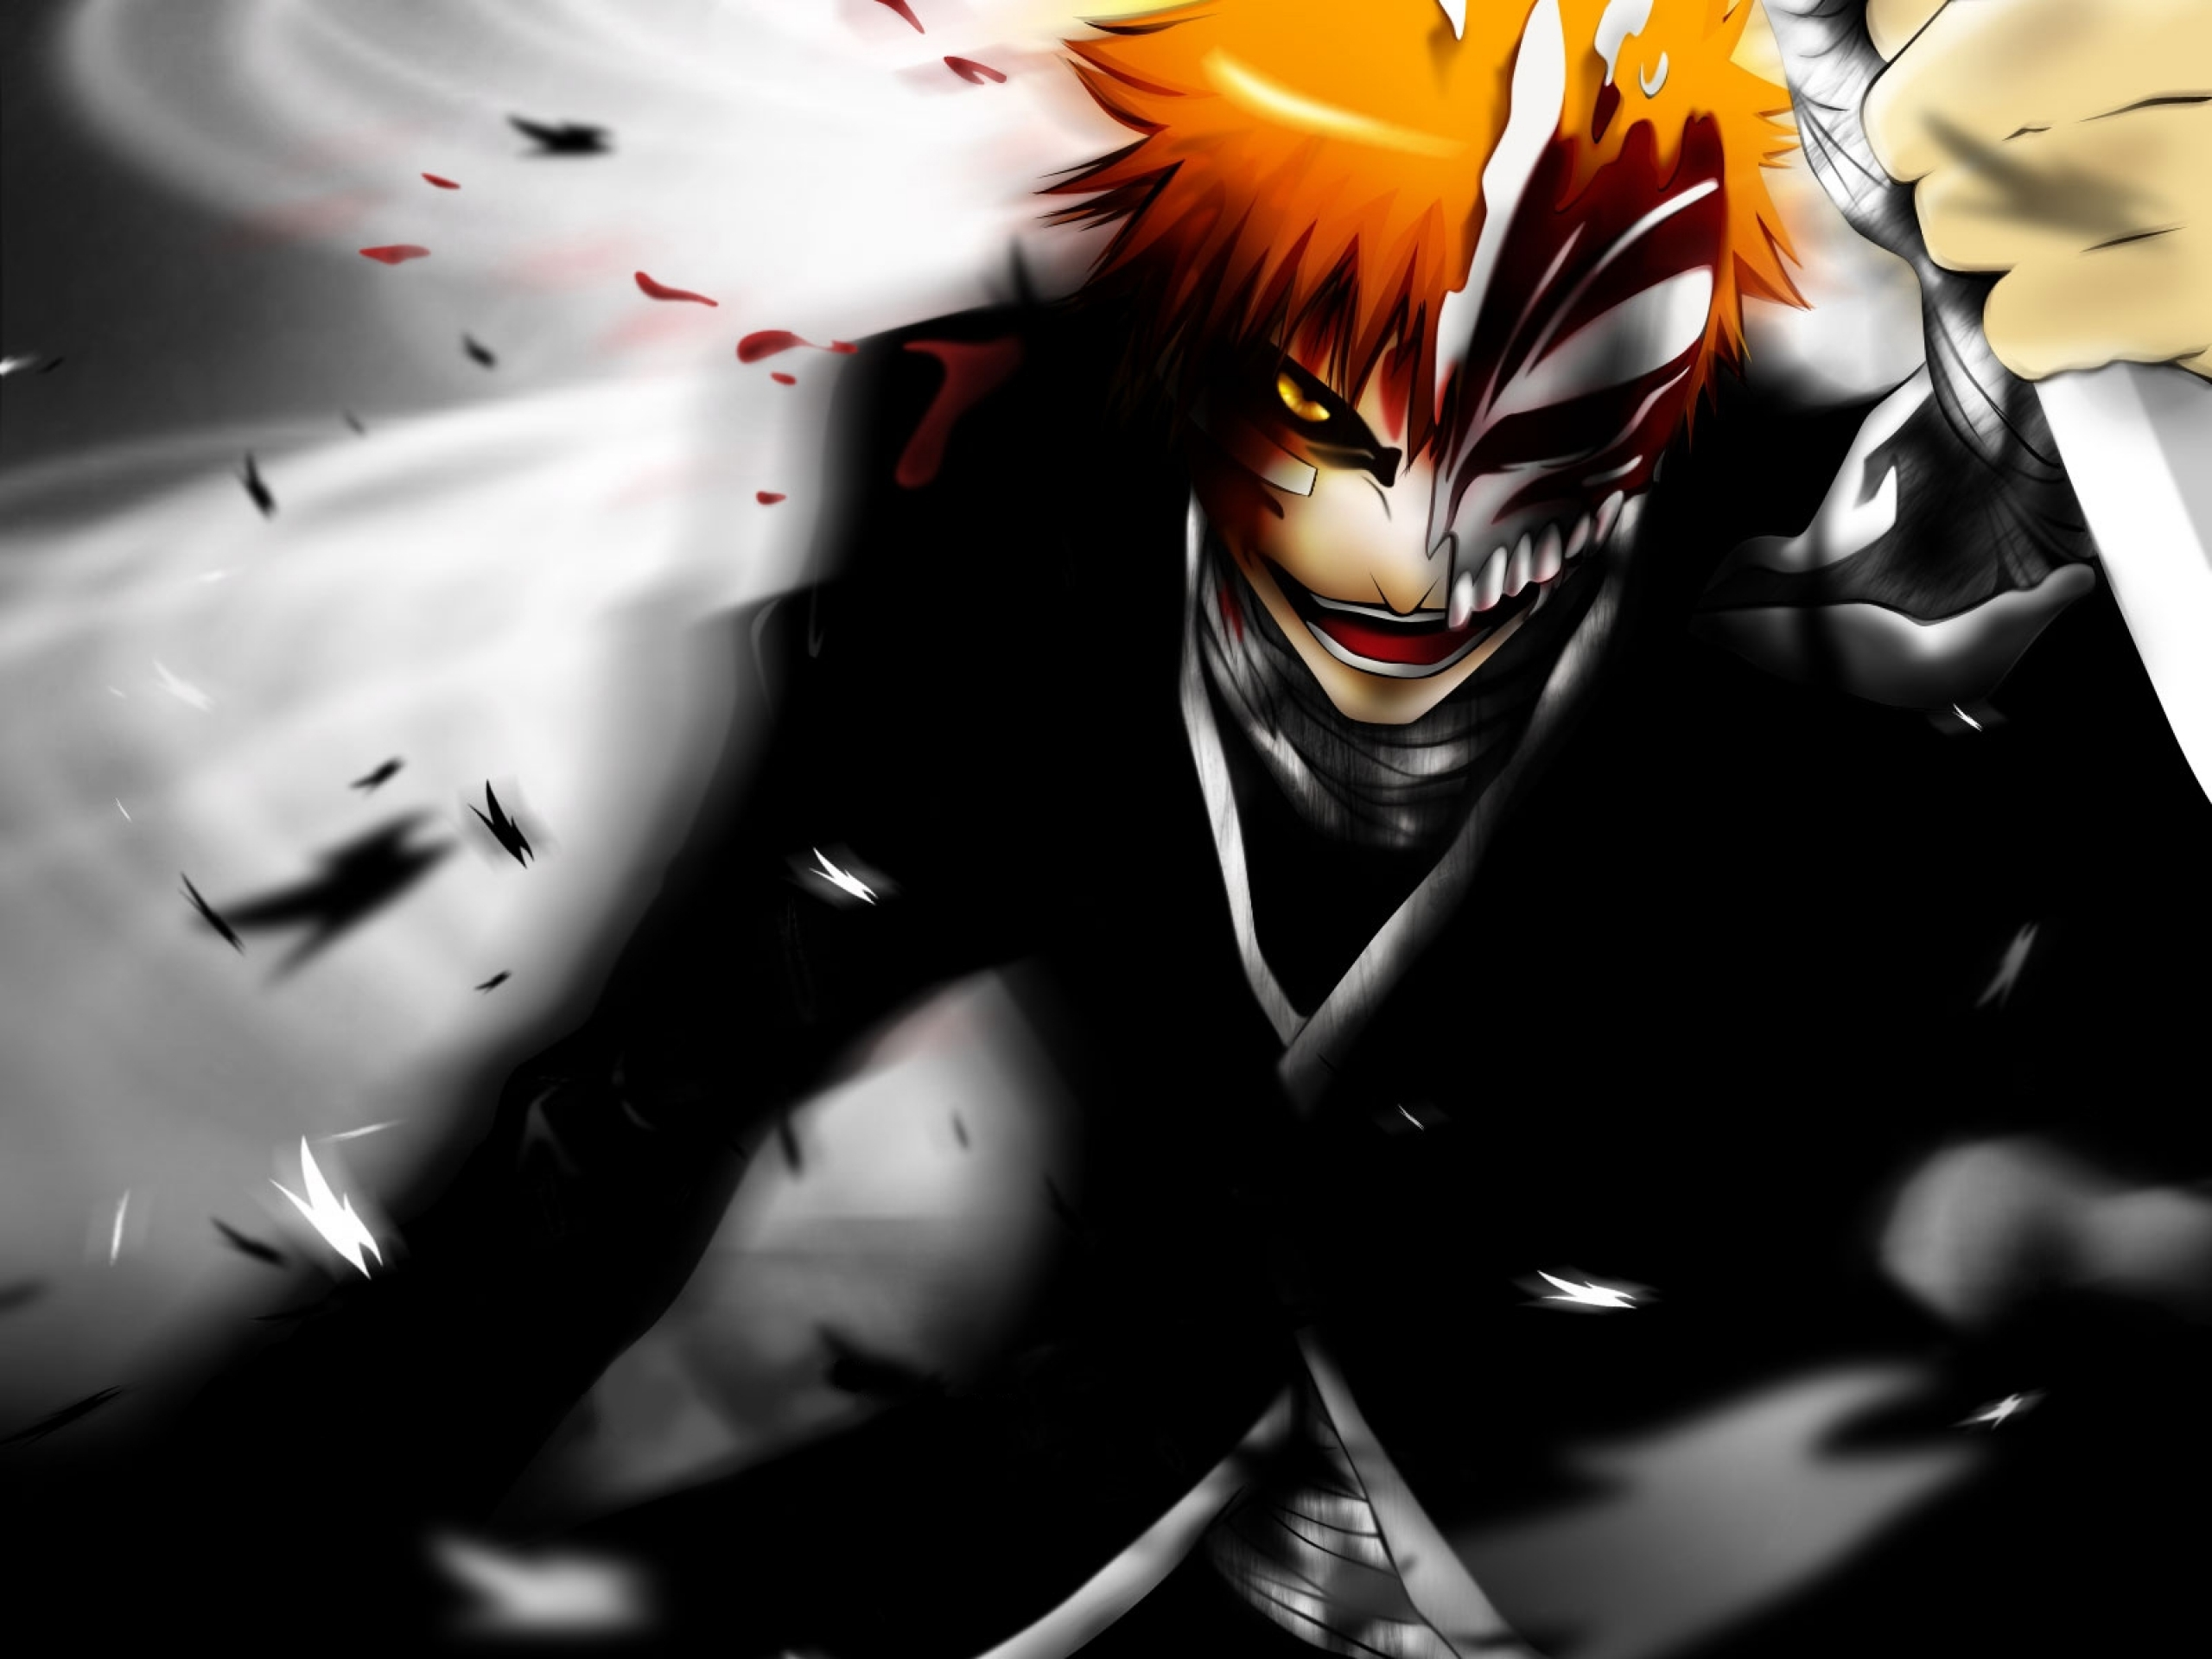 16 Hd Bleach Anime Wallpapers